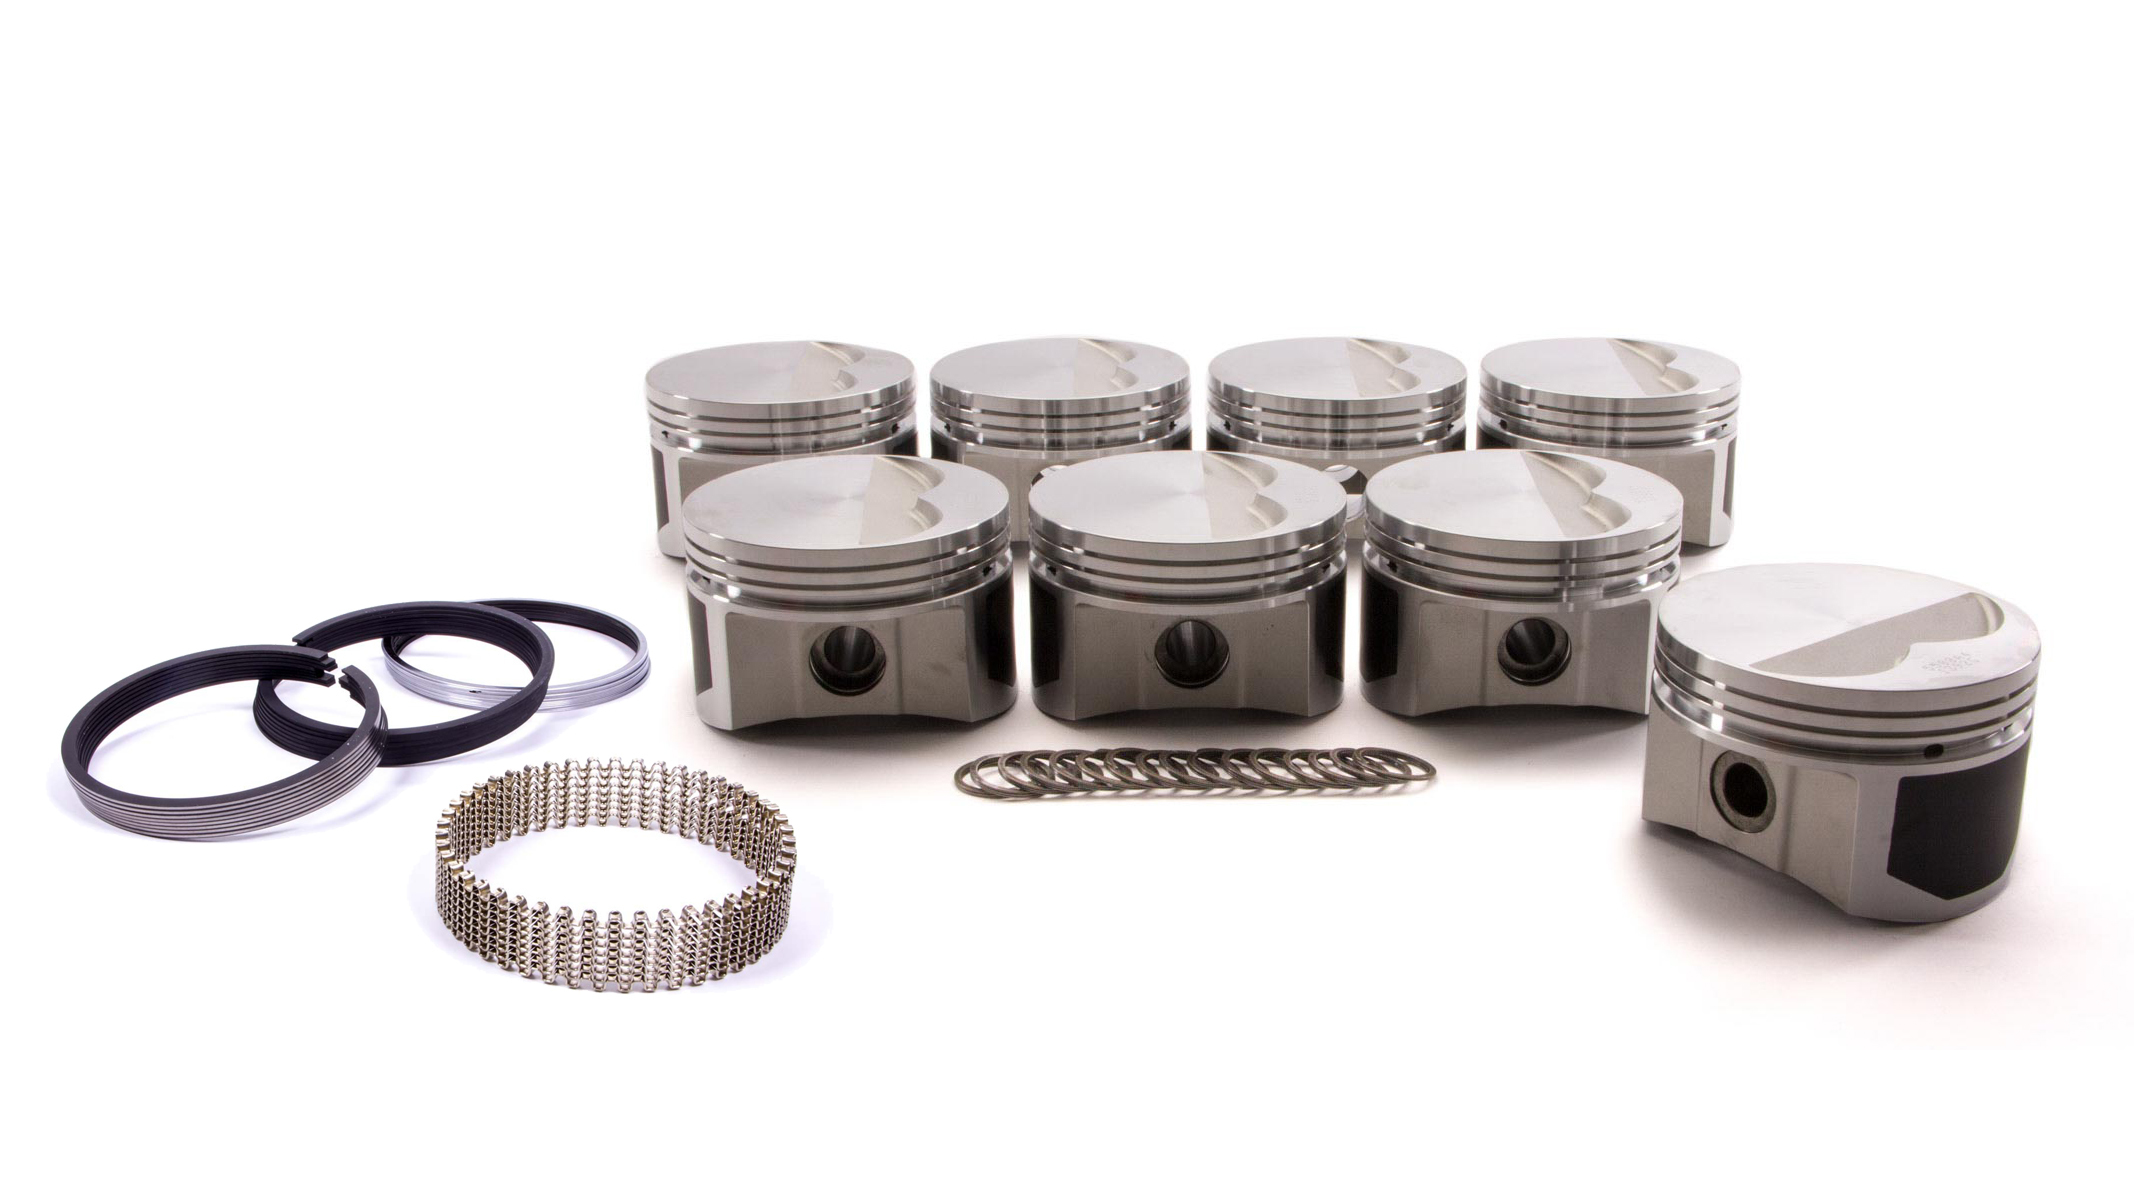 Wiseco Pro-Tru PTS500A4 Piston and Ring, Windsor Flat Top, Forged, 4.040 in Bore, 1/16 x 1/16 x 3/16 in Ring Grooves, Minus 7.0 cc, Small Block Ford, Kit